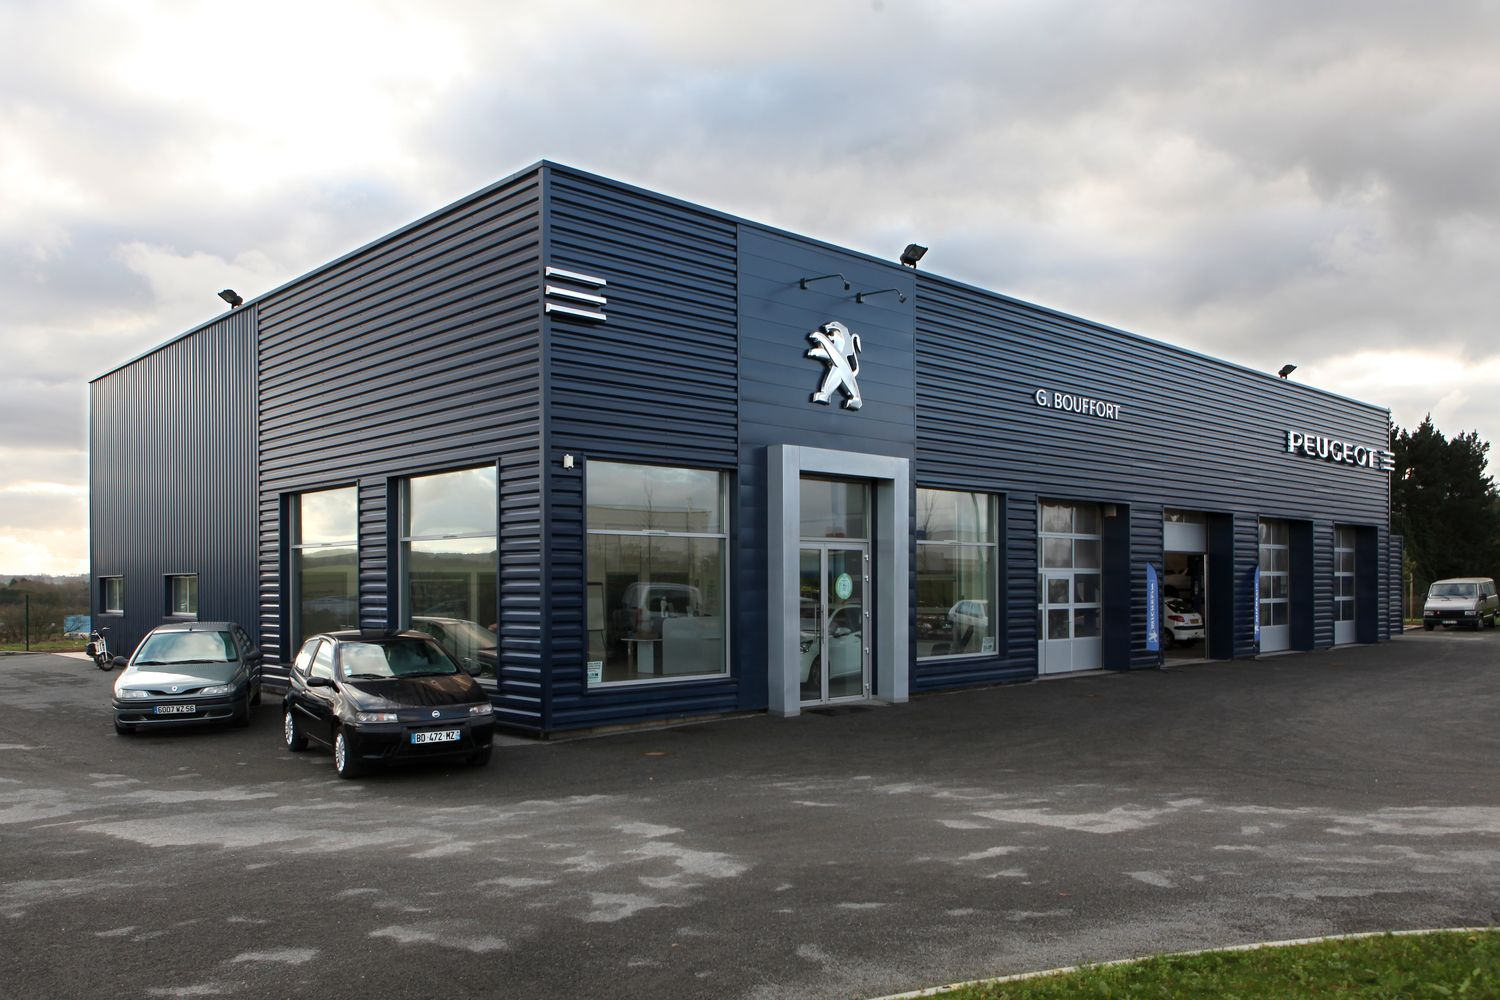 Ace ing nierie abc contractant r alisations peugeot for Garage peugeot libourne